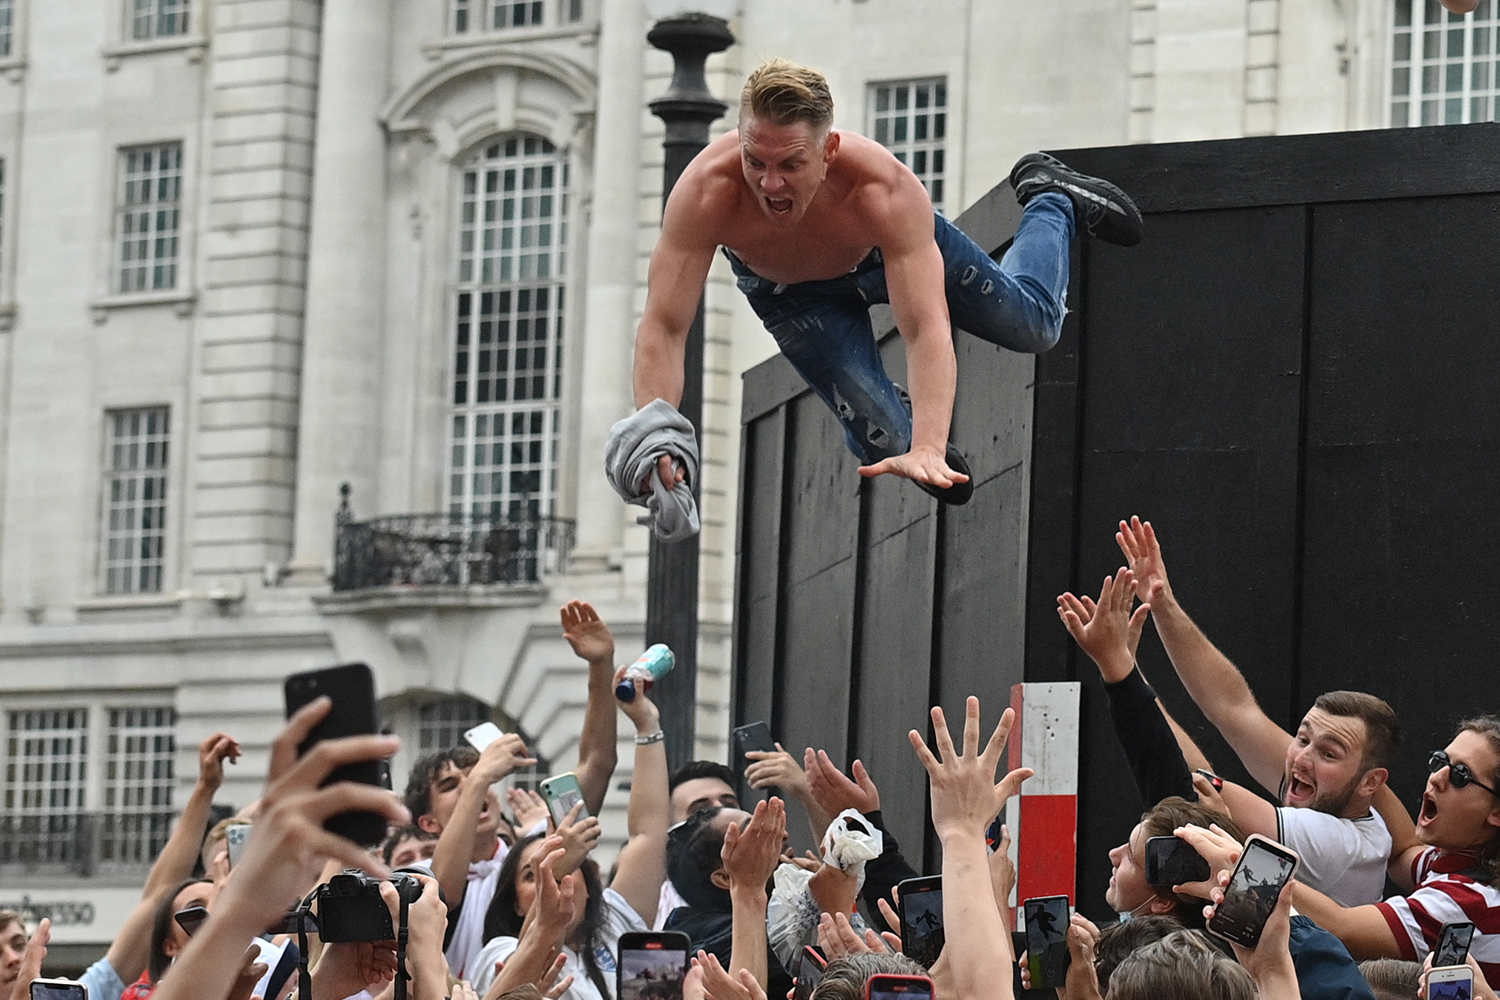 Man celebrates Euro 2020 game between England and Italy